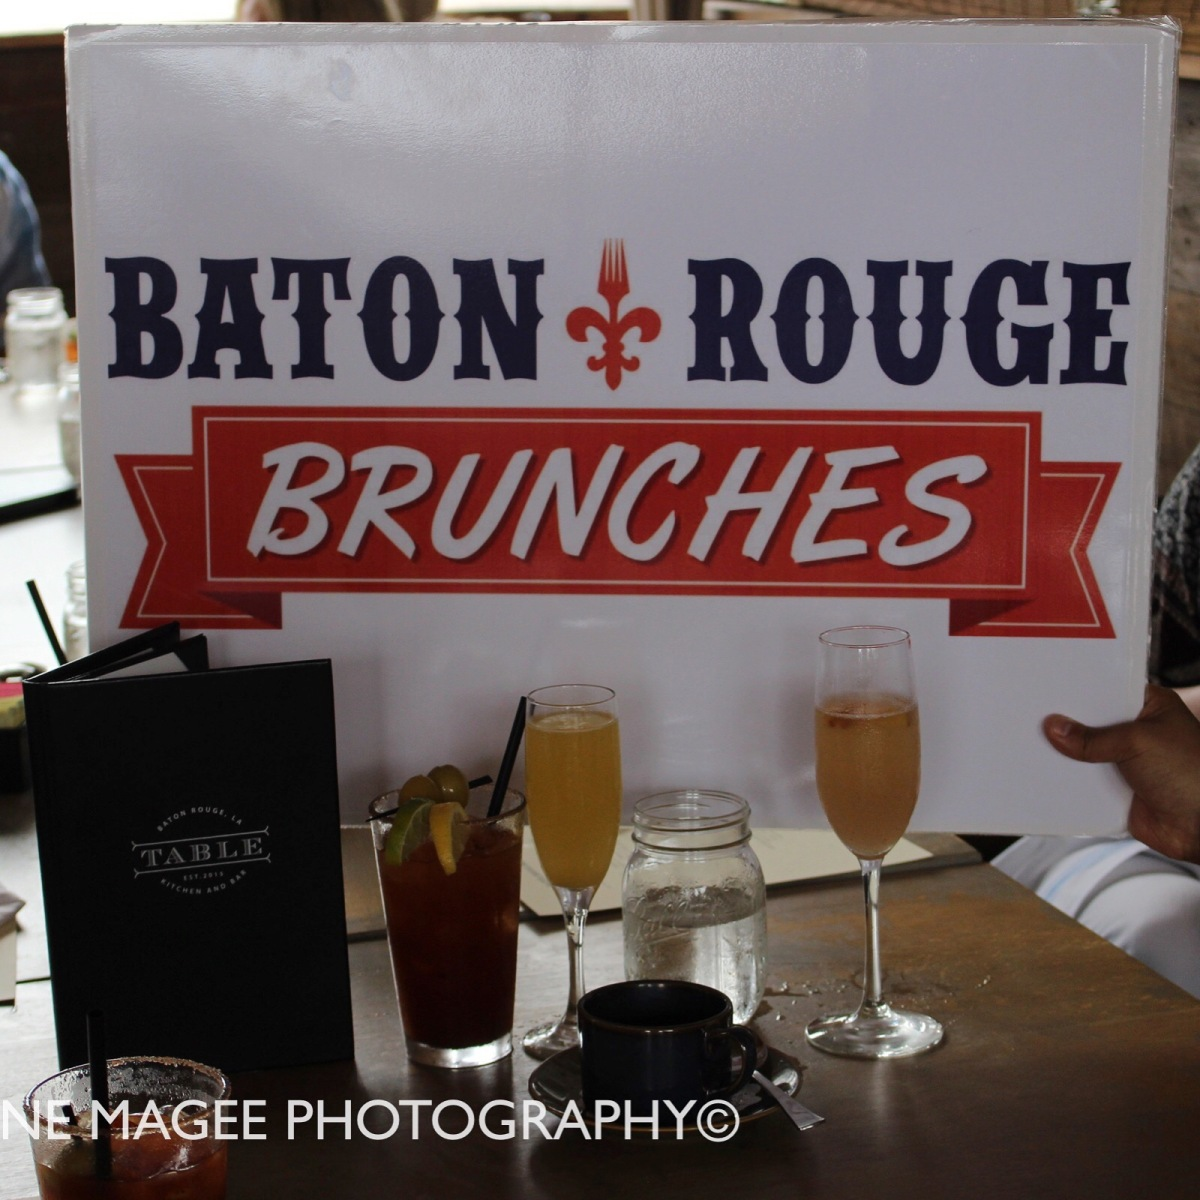 BATON ROUGE BRUNCHES FATHER'S DAY BRUNCH LIST